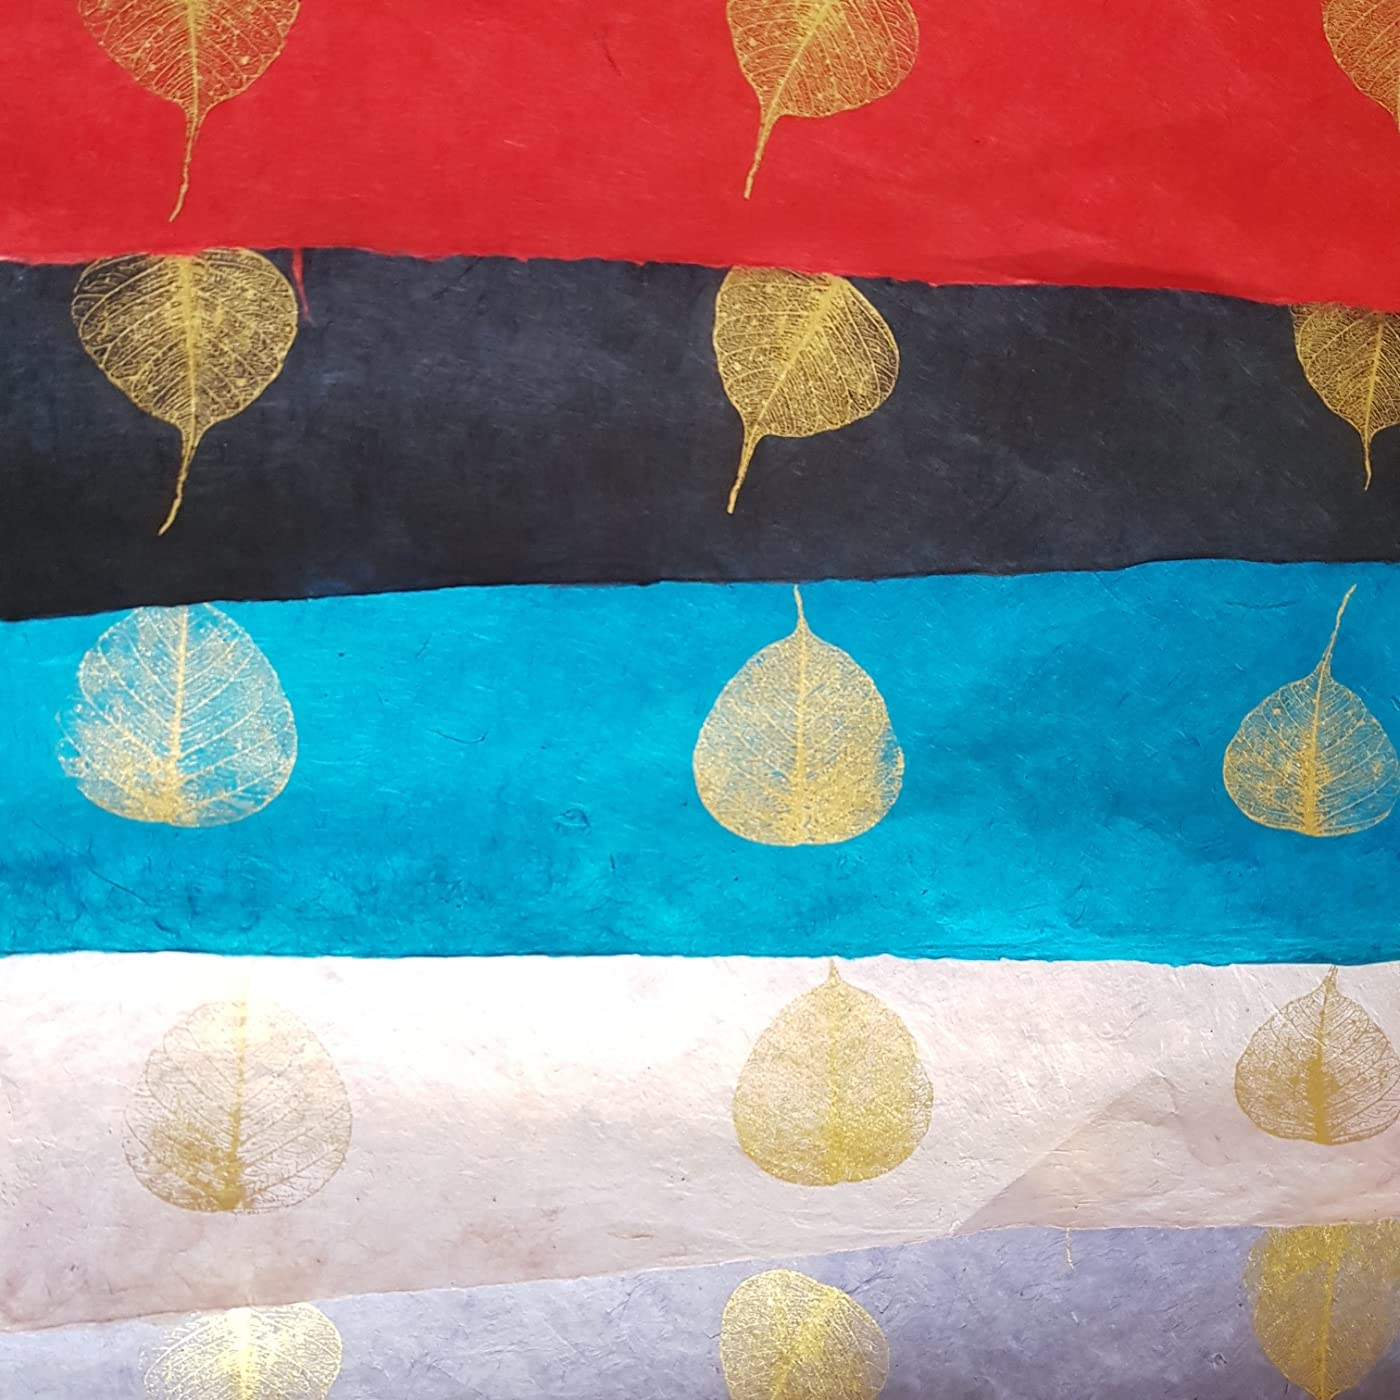 Lokta Paper Handmade in the Sale SALE% OFF Sustainable Himalayas. - Free Max 59% OFF Tree